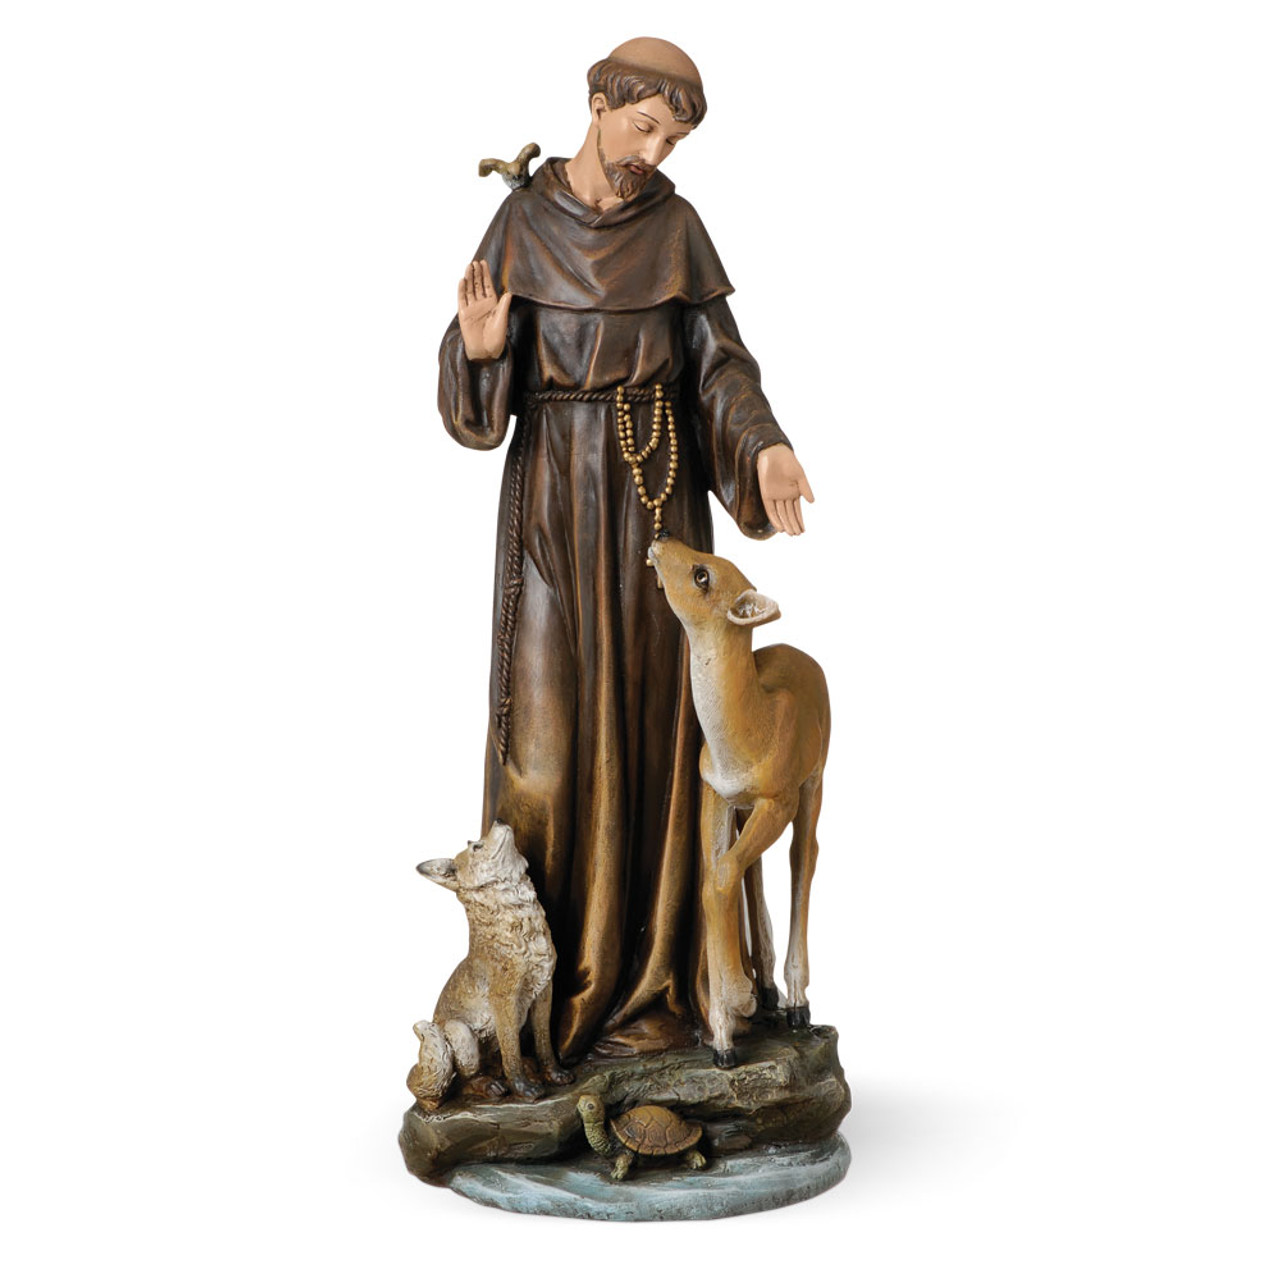 14 Inch St. Francis of Assisi Statue